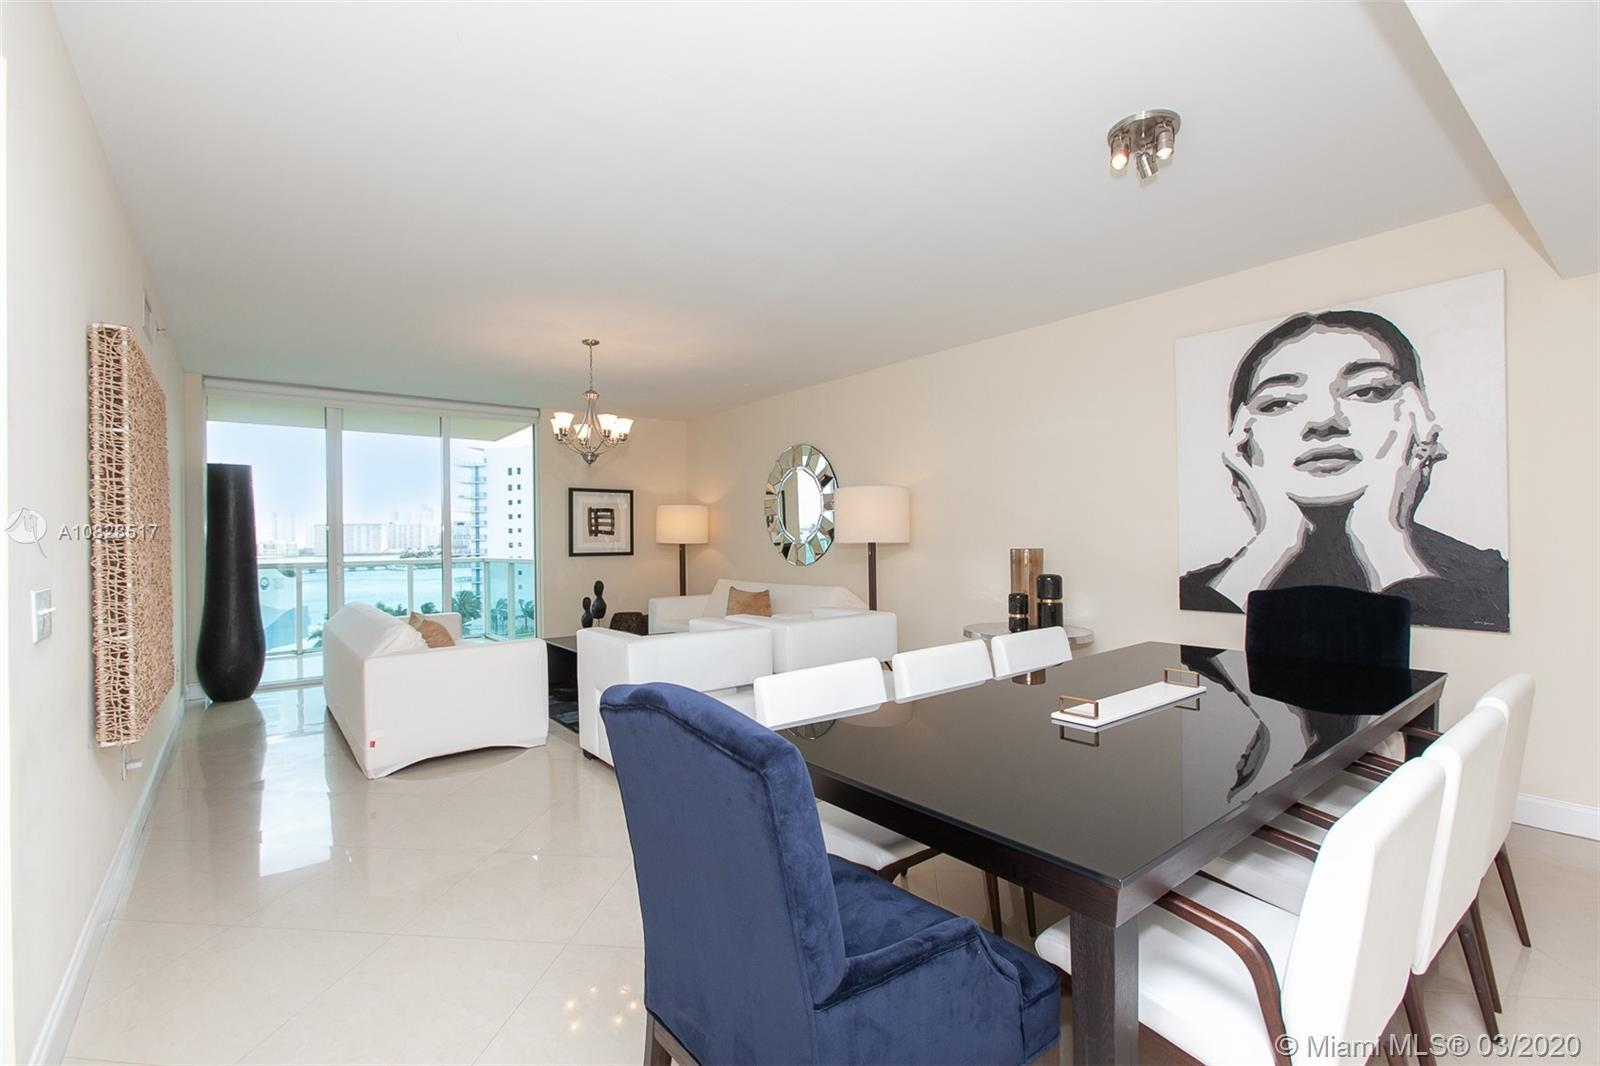 FABULOUS AVENTURA MARINA!  BEST DEAL!  STUNNING OCEAN & INTRACOASTAL VIEWS FROM FLOOR TO CEILING. GL